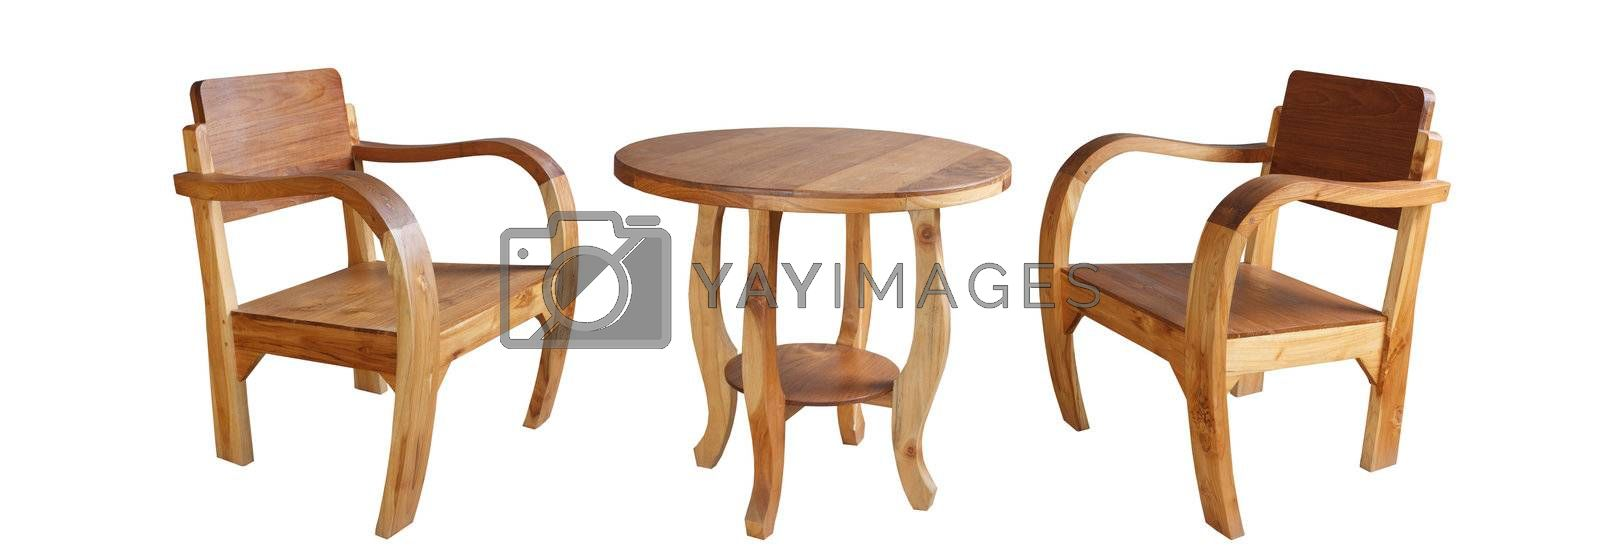 Set of wooden chairs and table on white background